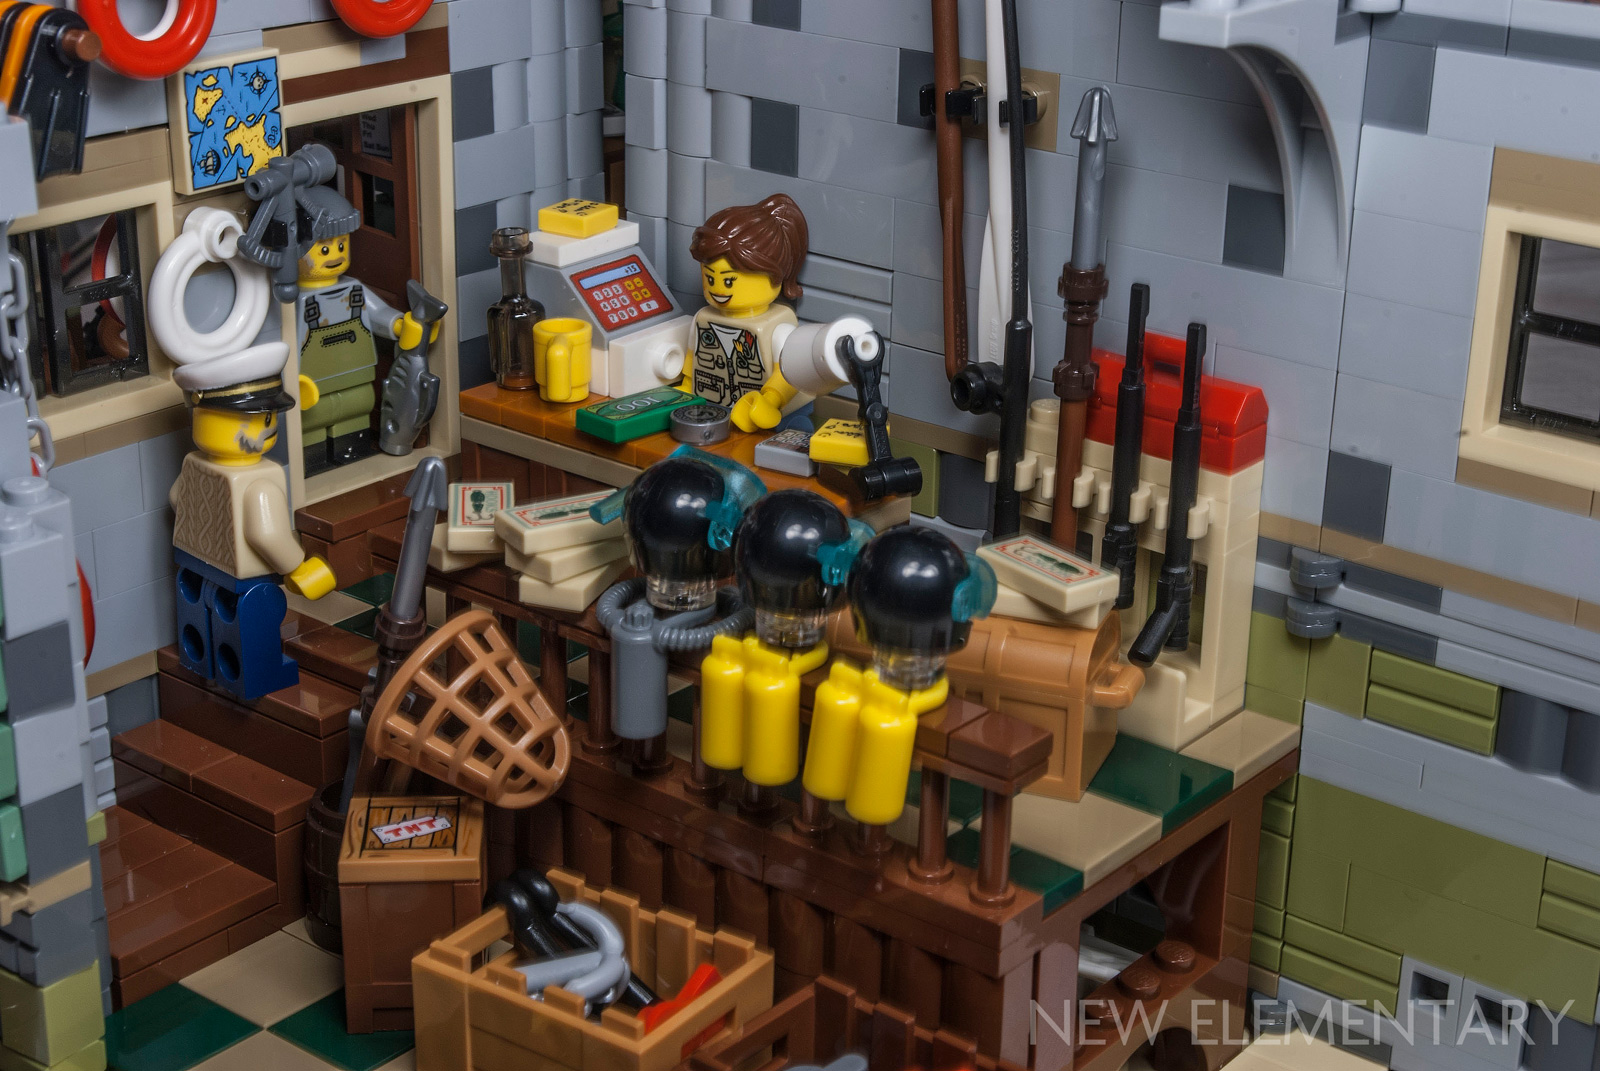 Gone fishin 39 new elementary a lego blog of parts for Lego old fishing store